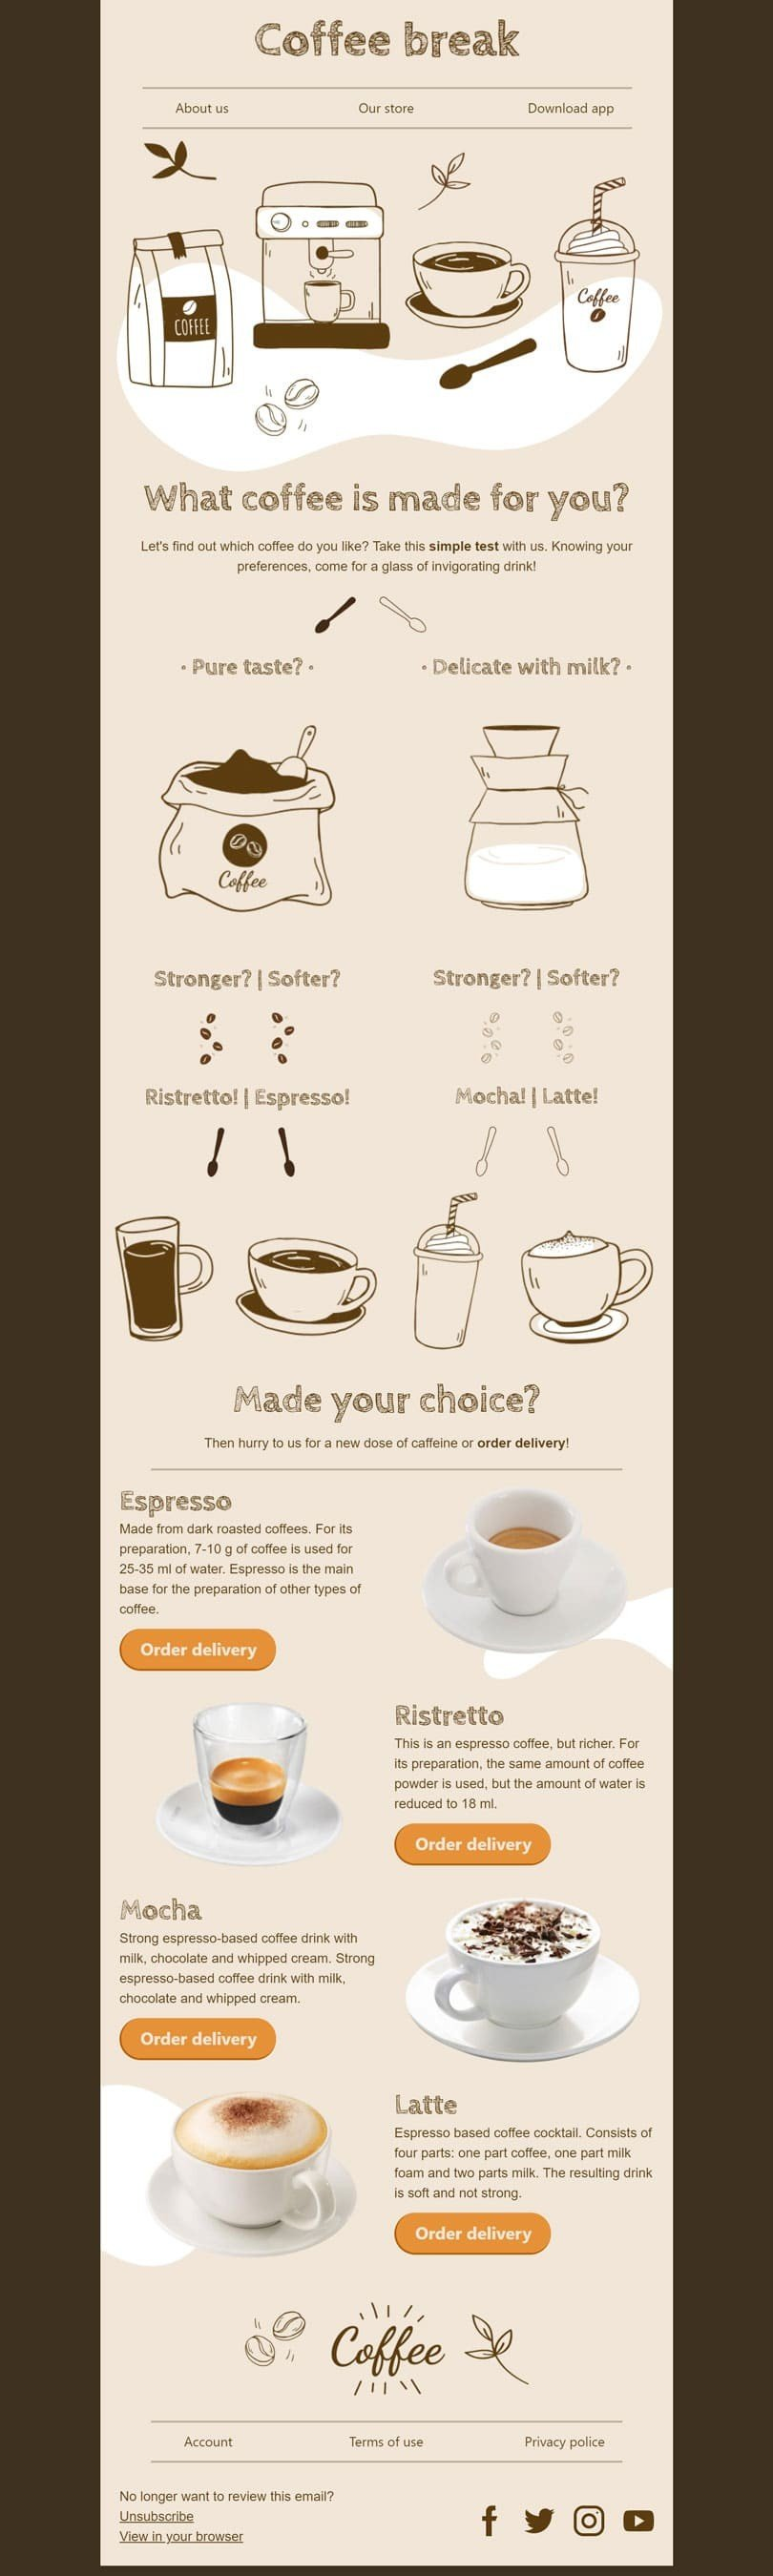 Promo Email Template «Choose your coffee» for Beverages industry desktop view